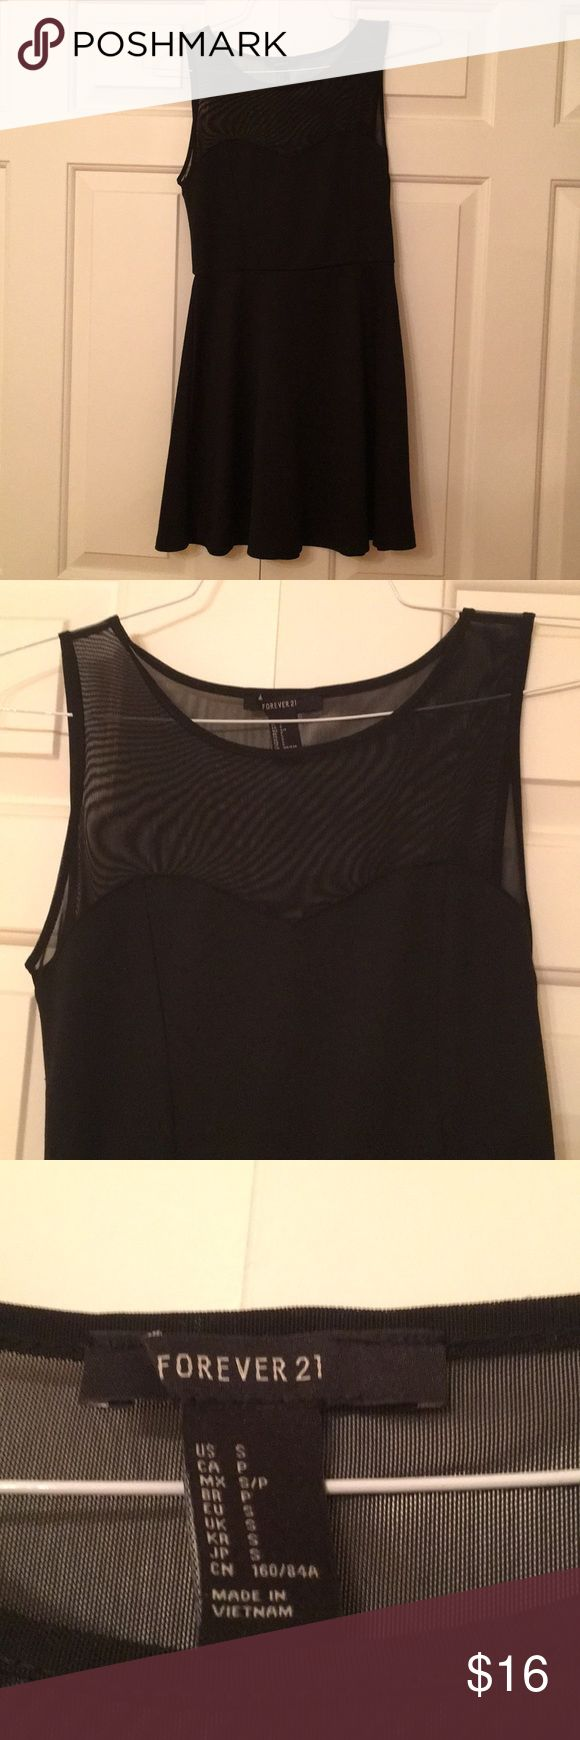 Sweetheart Illusion Neckline Dress Black dress with sweetheart neckline and high-neck illusion. Flared skirt. Only worn once. Size S. Perfect for holiday parties Forever 21 Dresses Mini